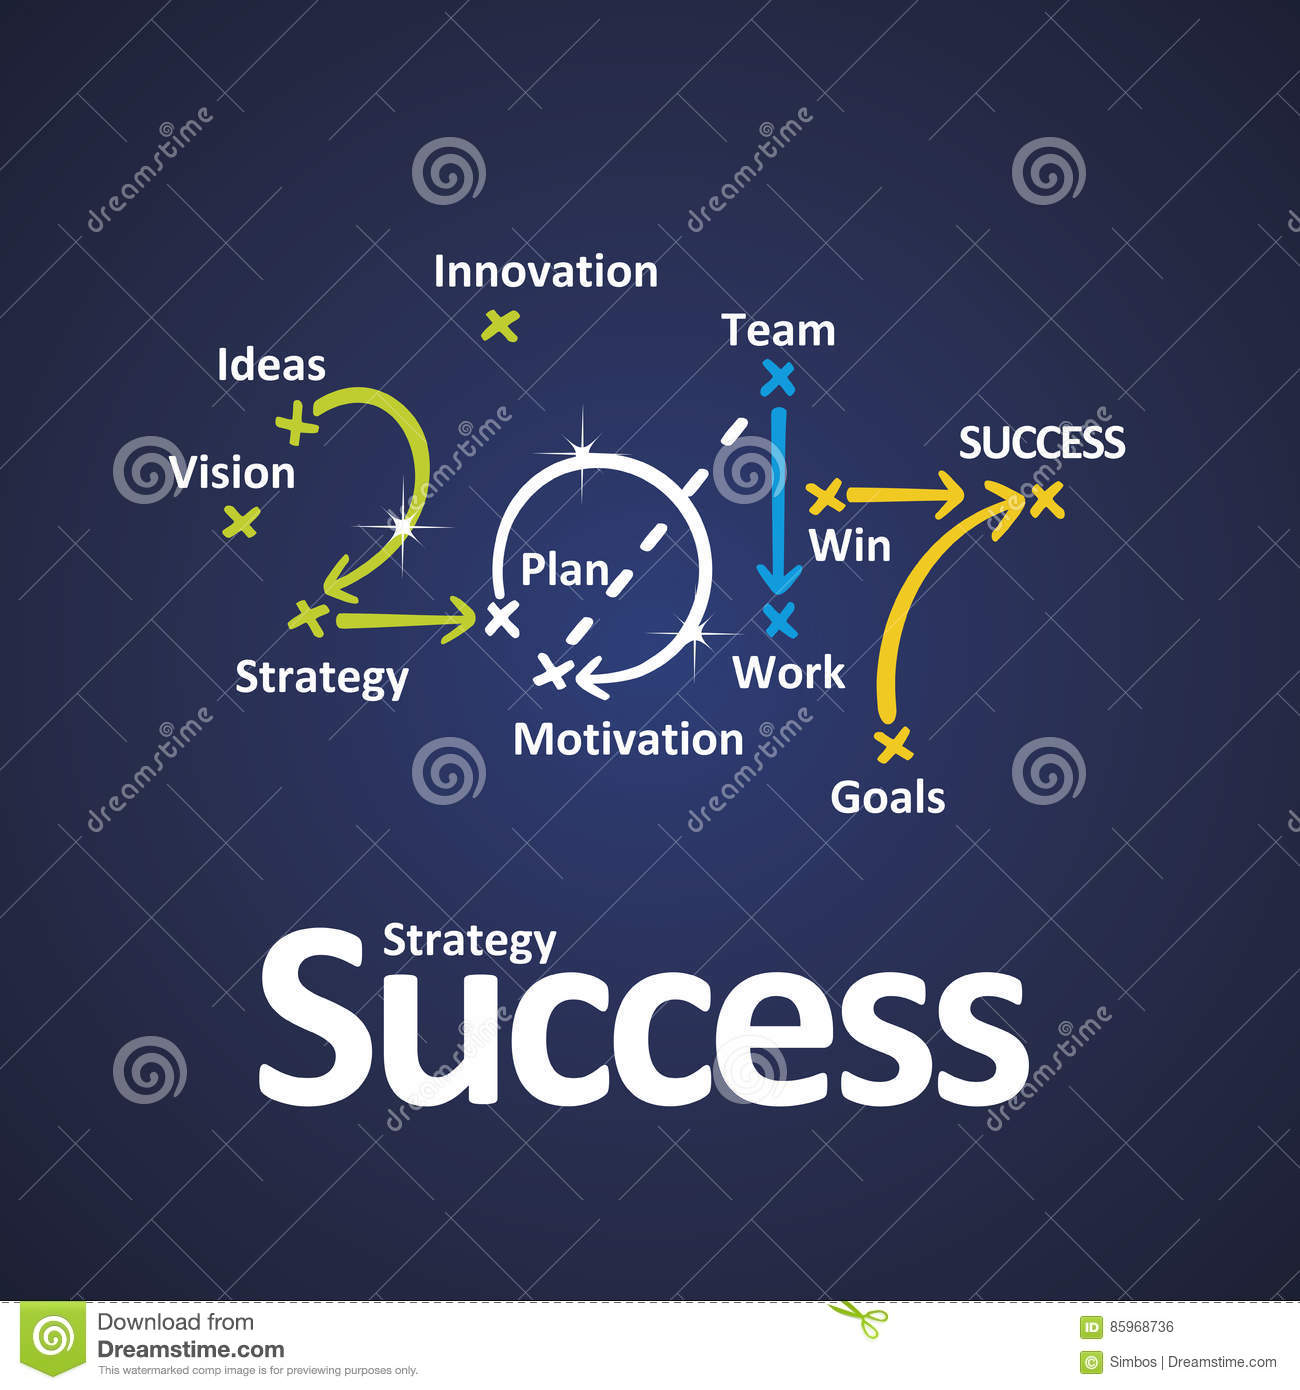 success strategy 2017 vision ideas strategy plan team work goal win color blue background vector